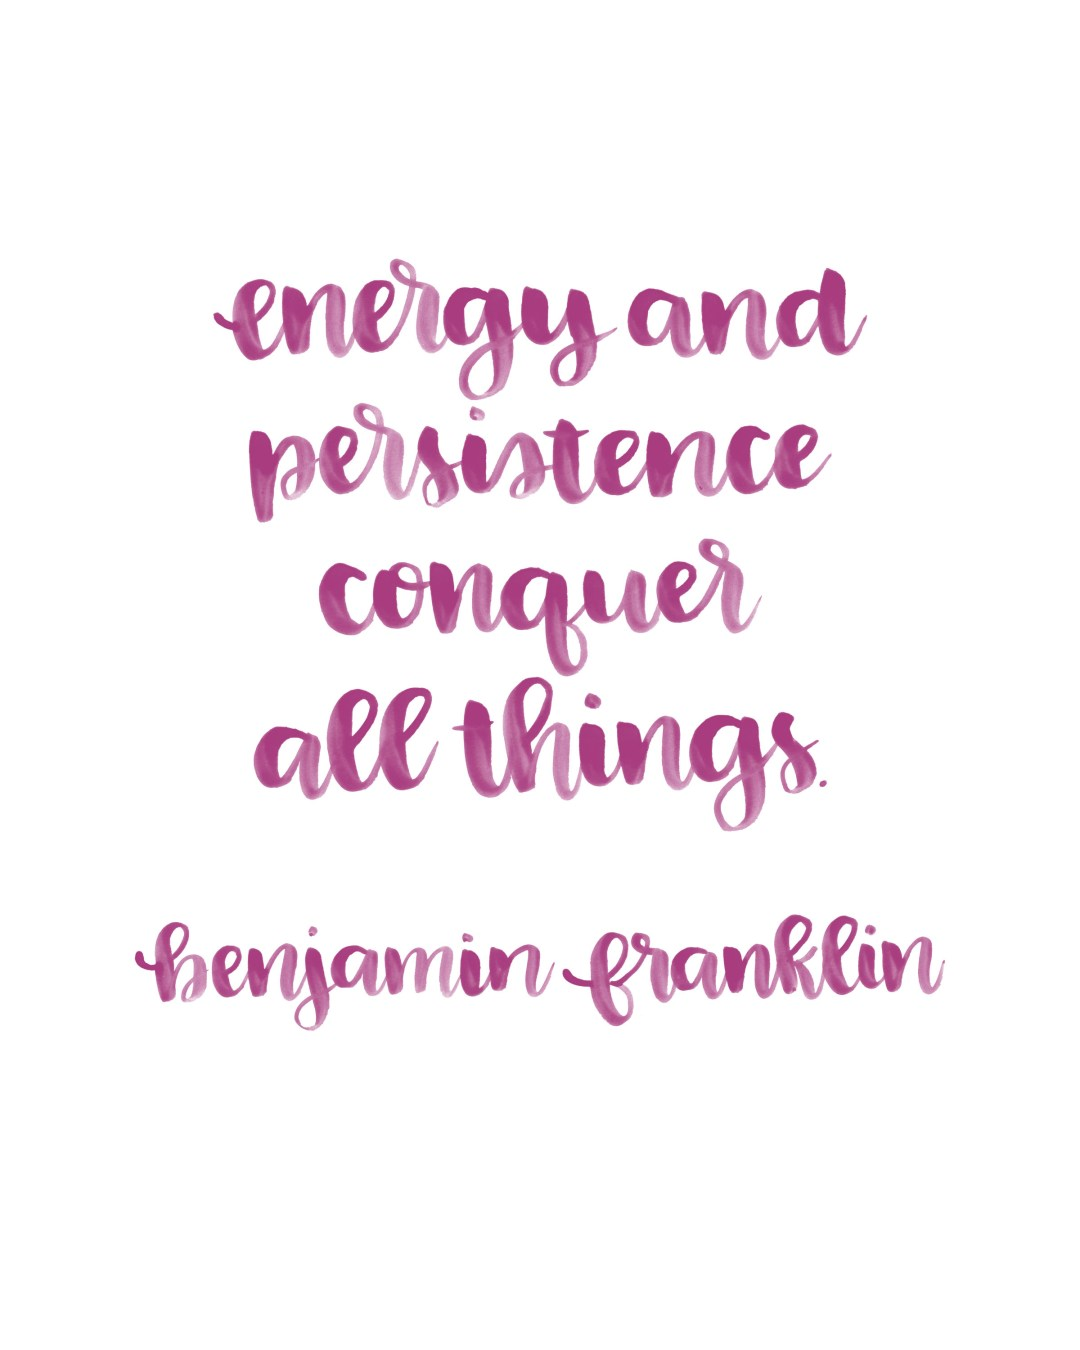 Energy Quotes Printable Brush Lettered Inspiration Energy And Persistence Quote